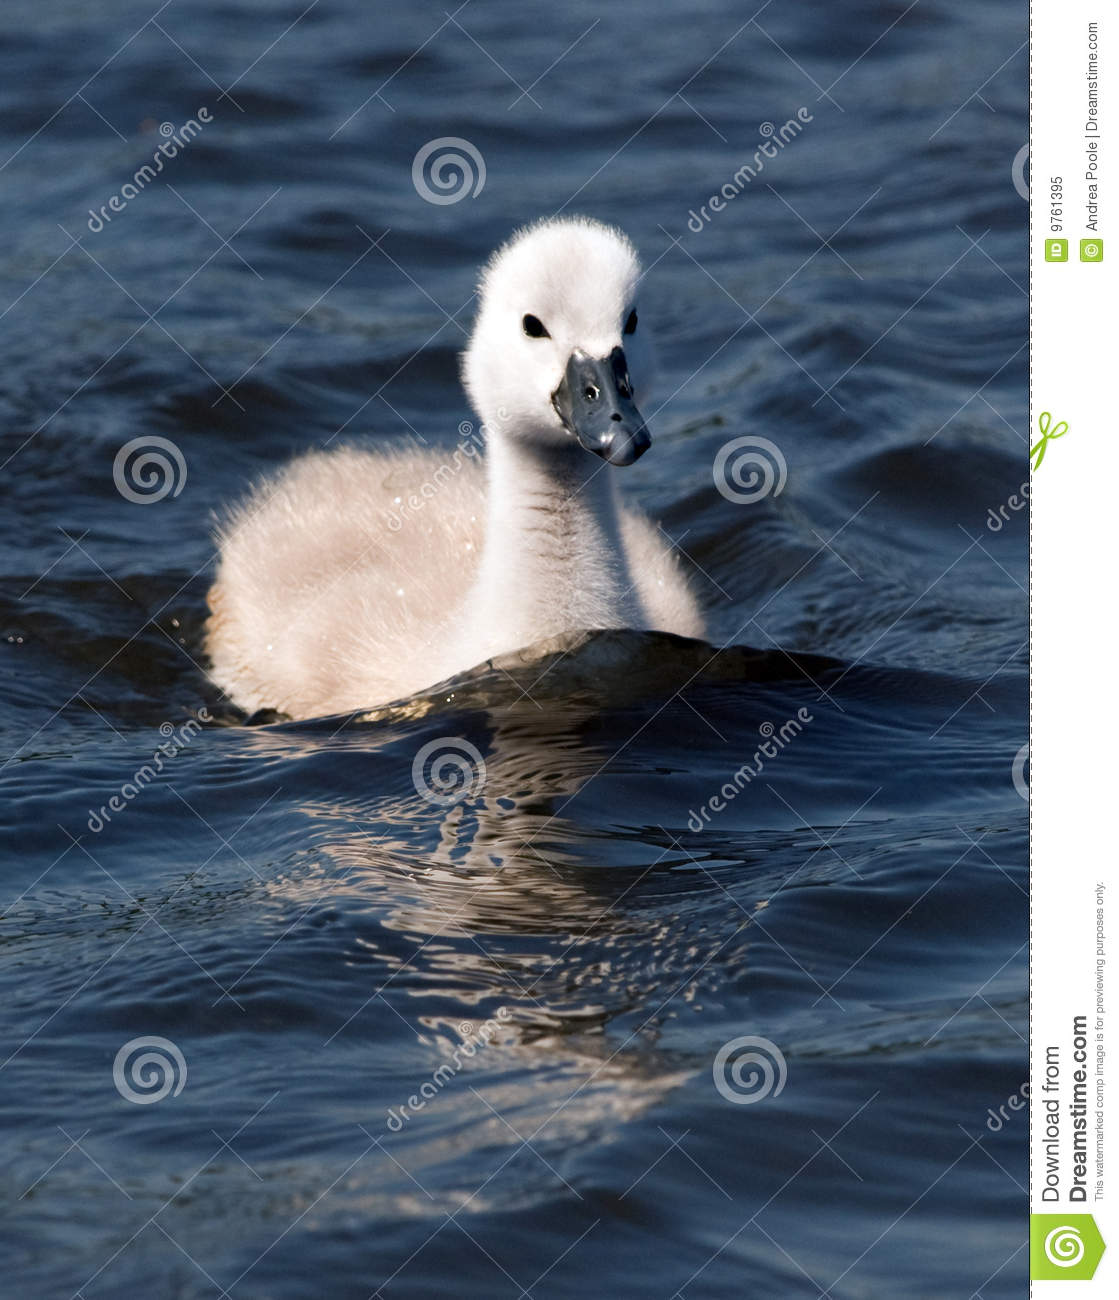 Cygnet clipart #10, Download drawings